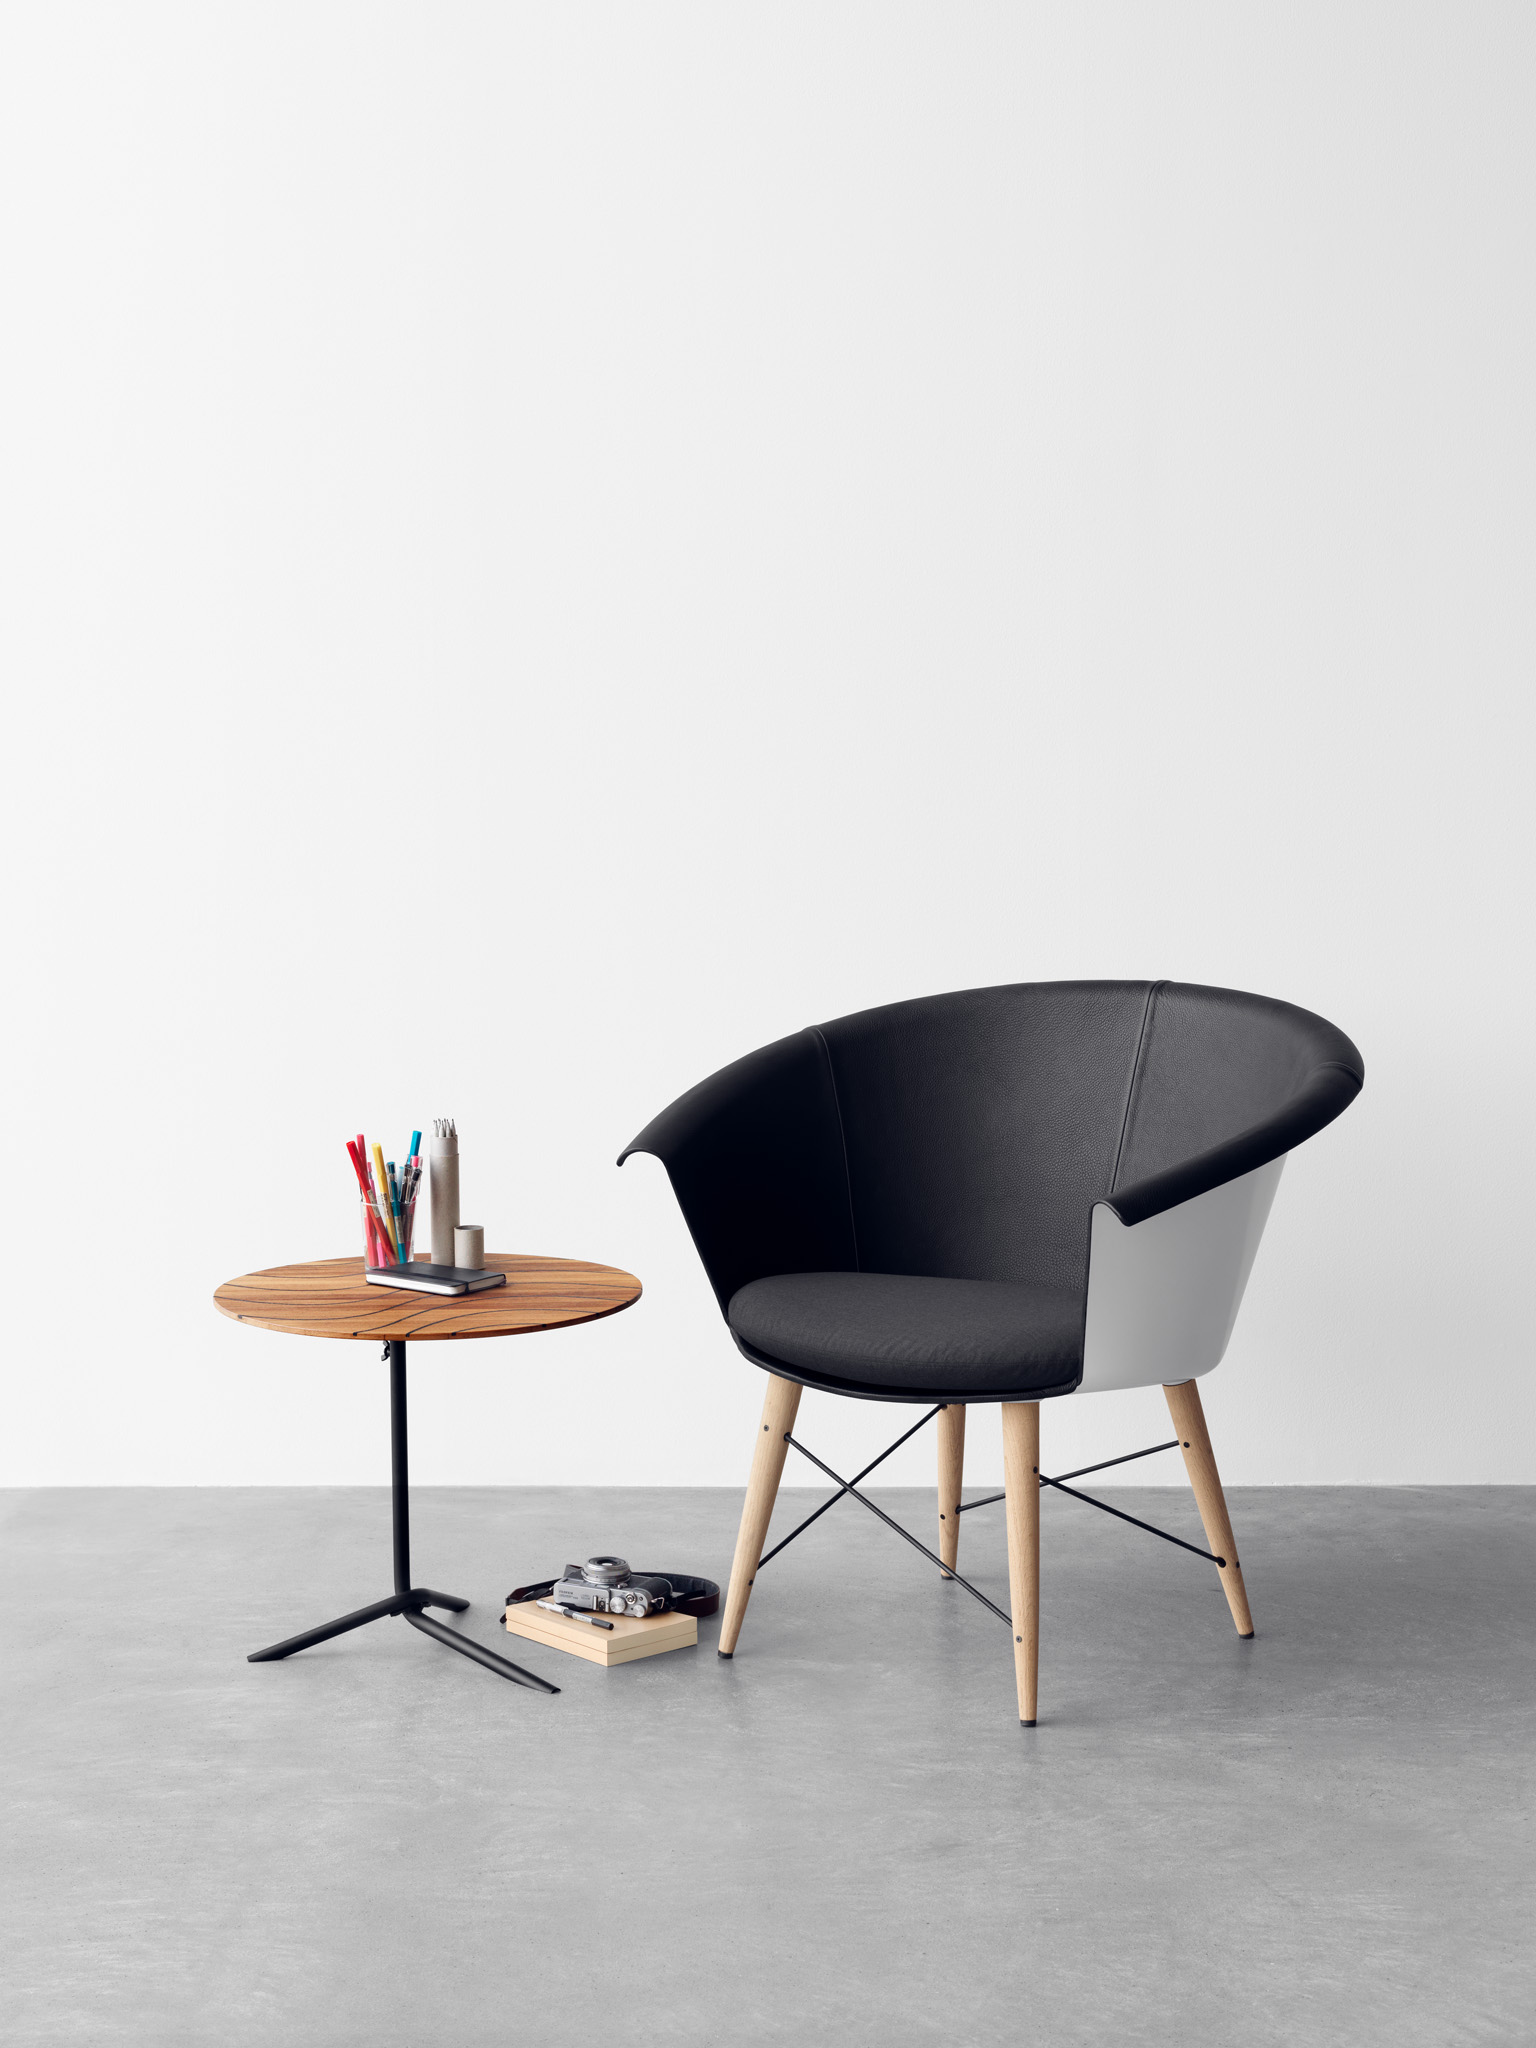 Jangir Maddadi Unveils Captain Chair And Grace Table - eVolo